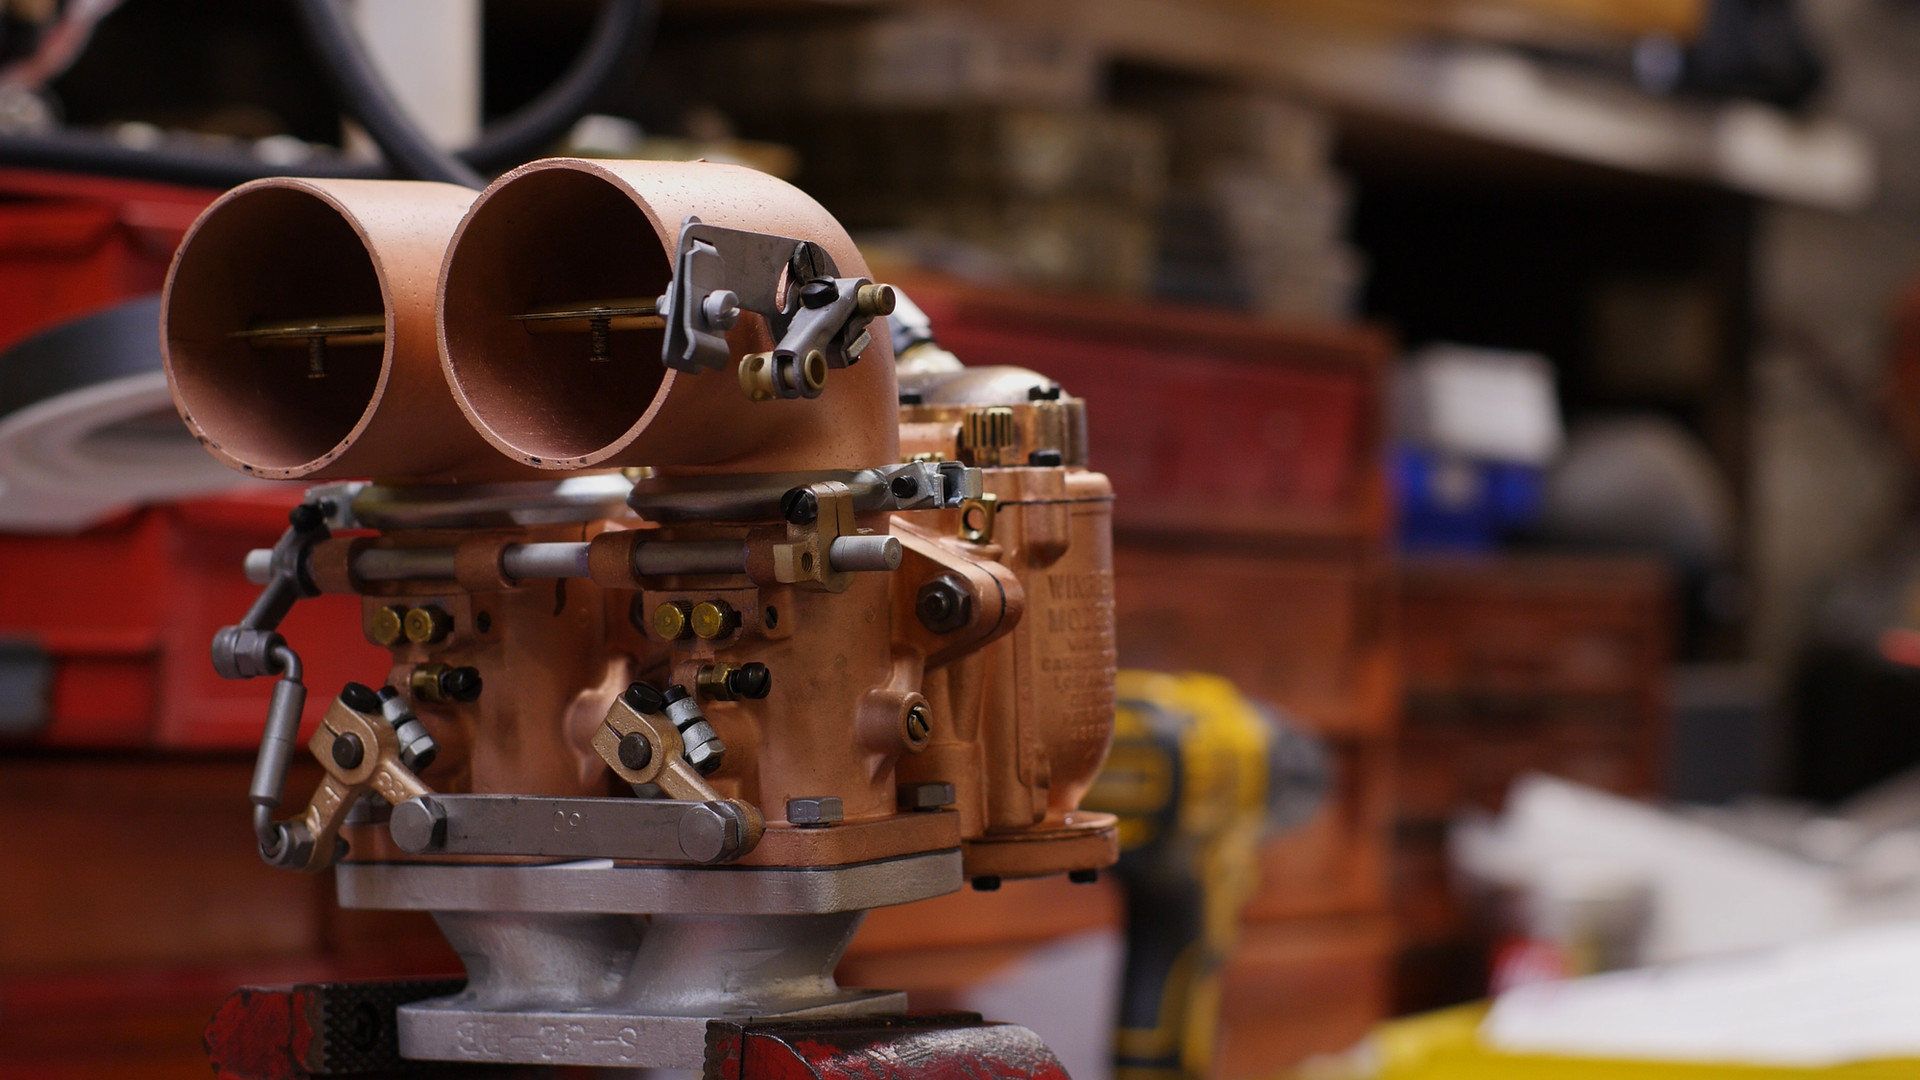 Winfield Carburetor Restoration